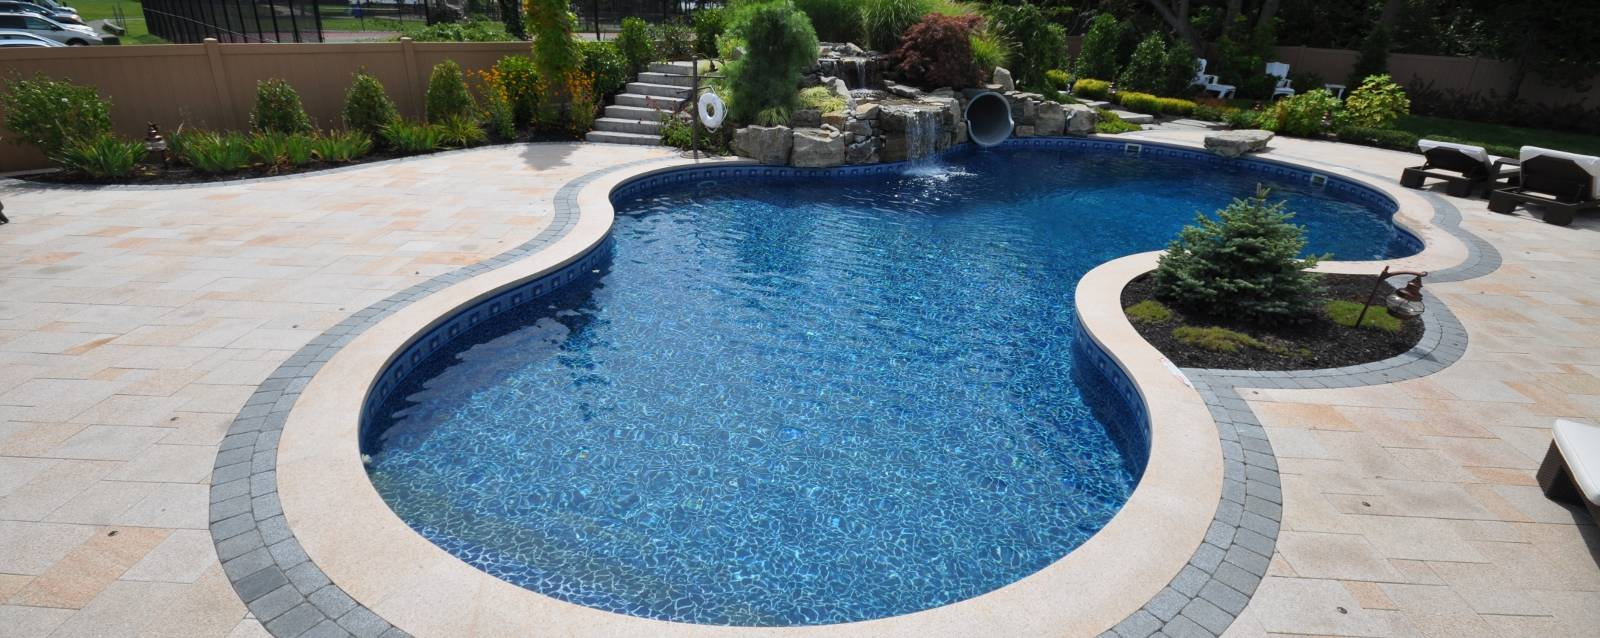 Inground swimming pool landscaping interior design ideas for Inground swimming pool plans